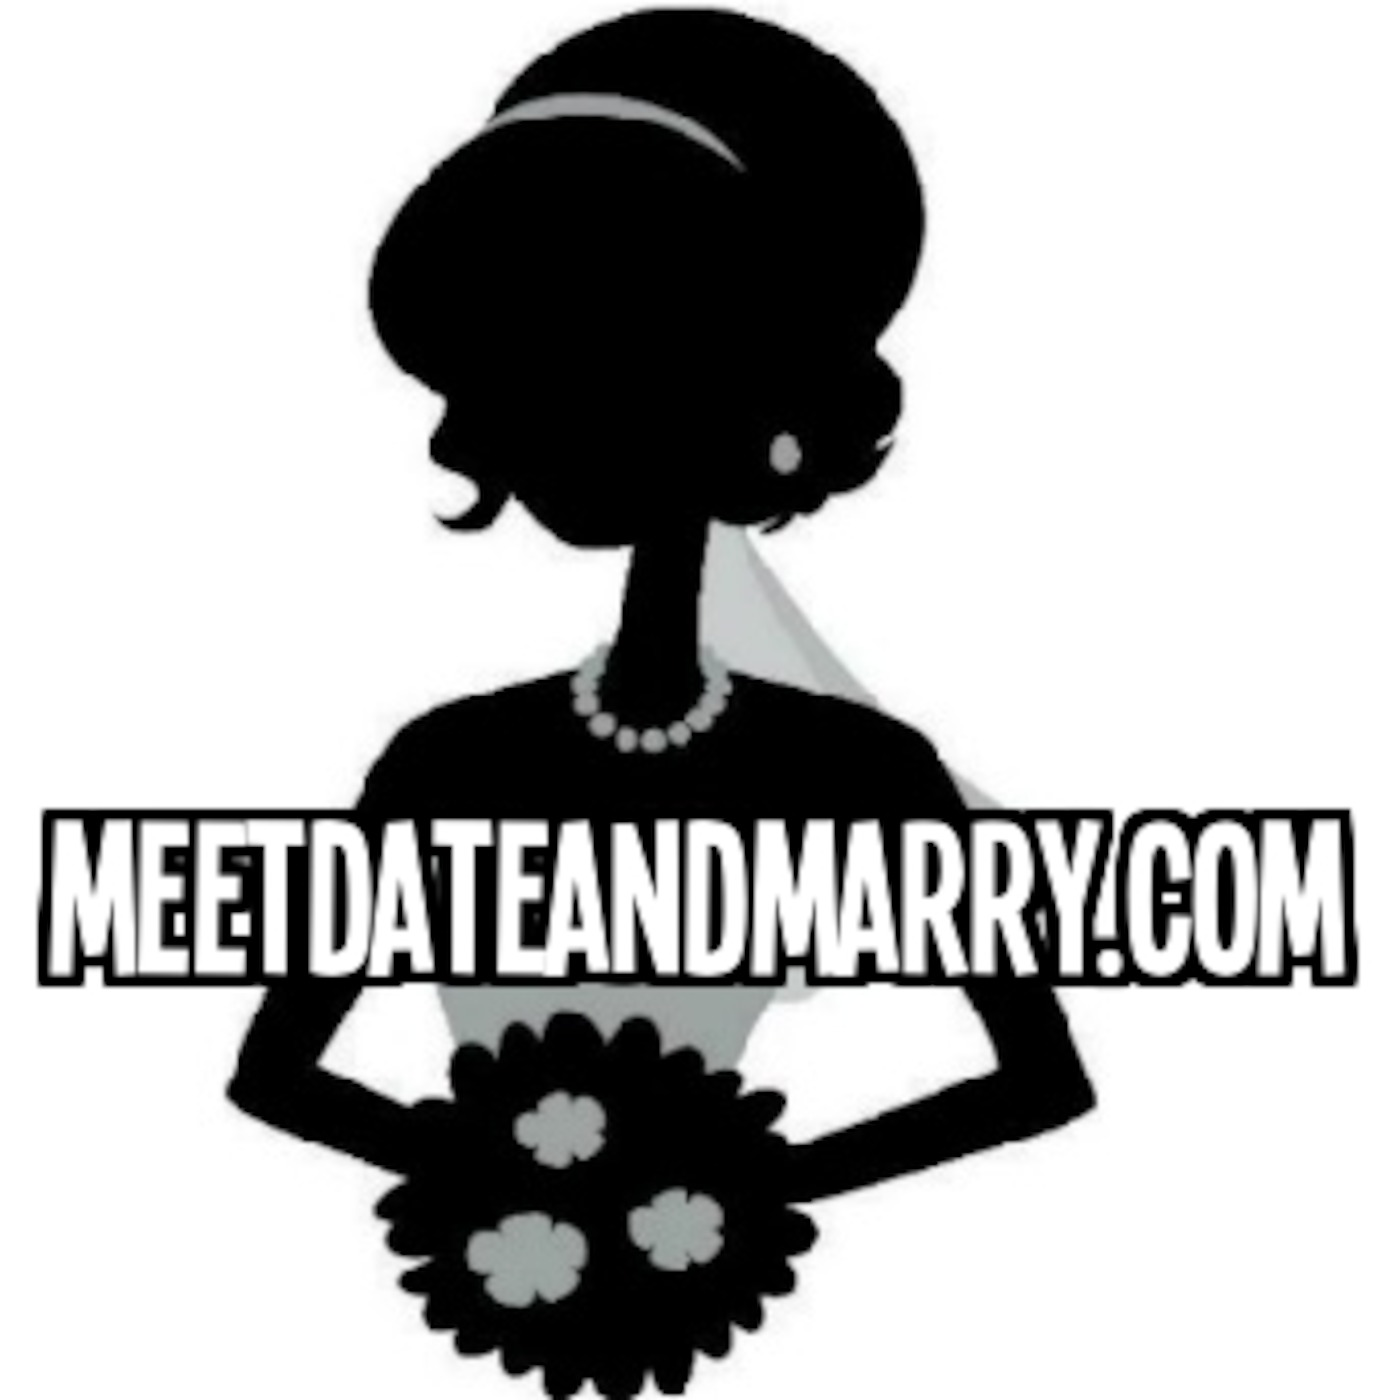 Meet date and marry show